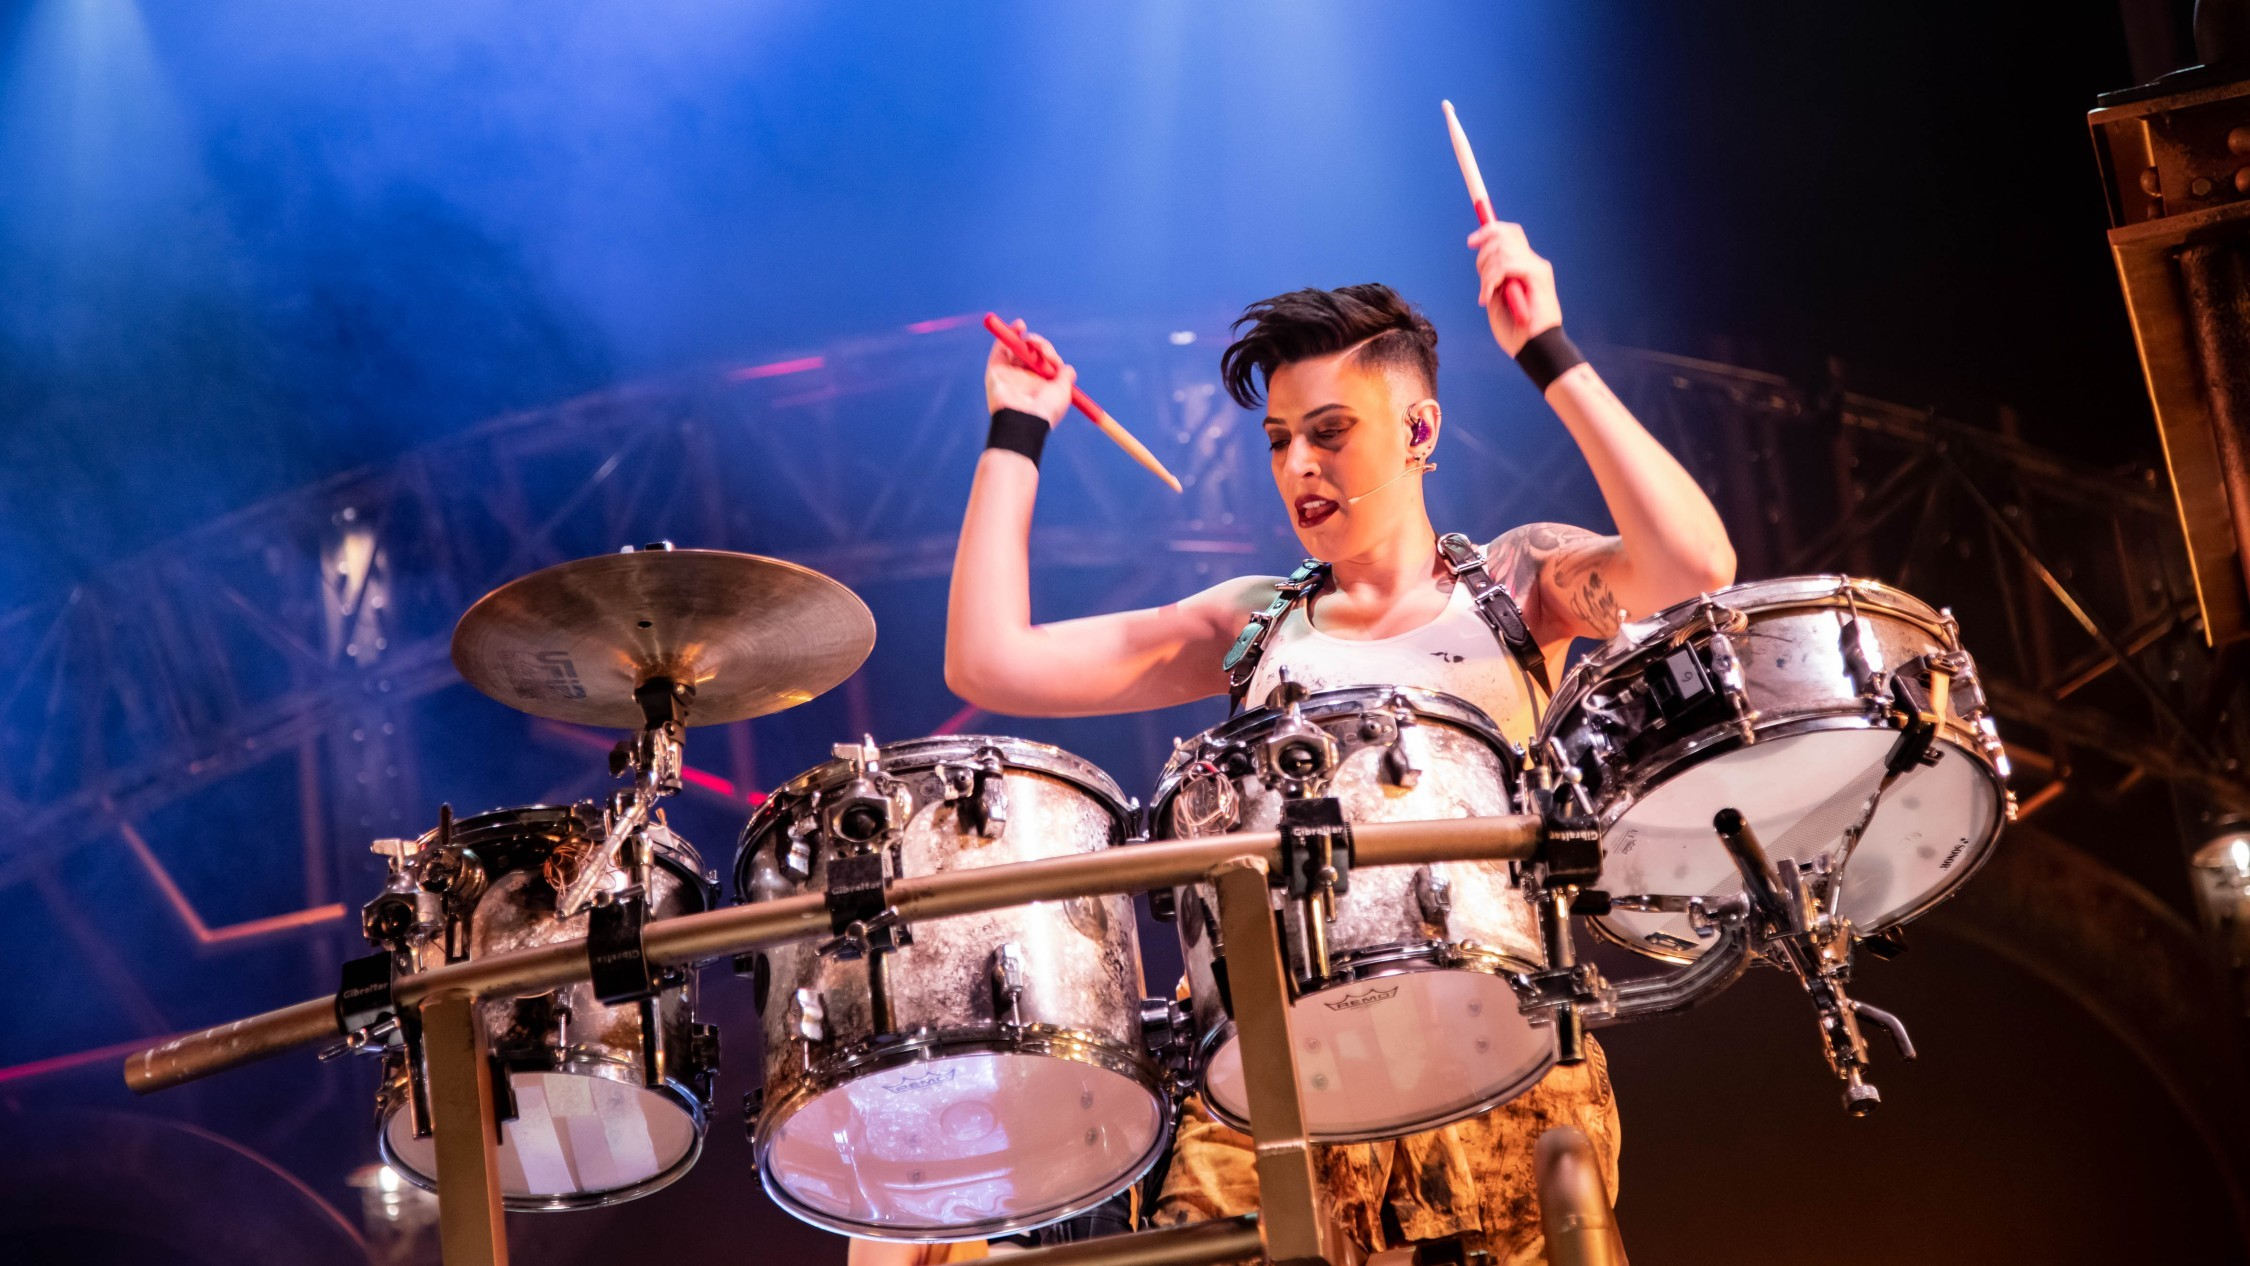 A woman wearing a white singlet, black wrist cuffs and a short spiky hair cut looms over a drum kit, mid performance